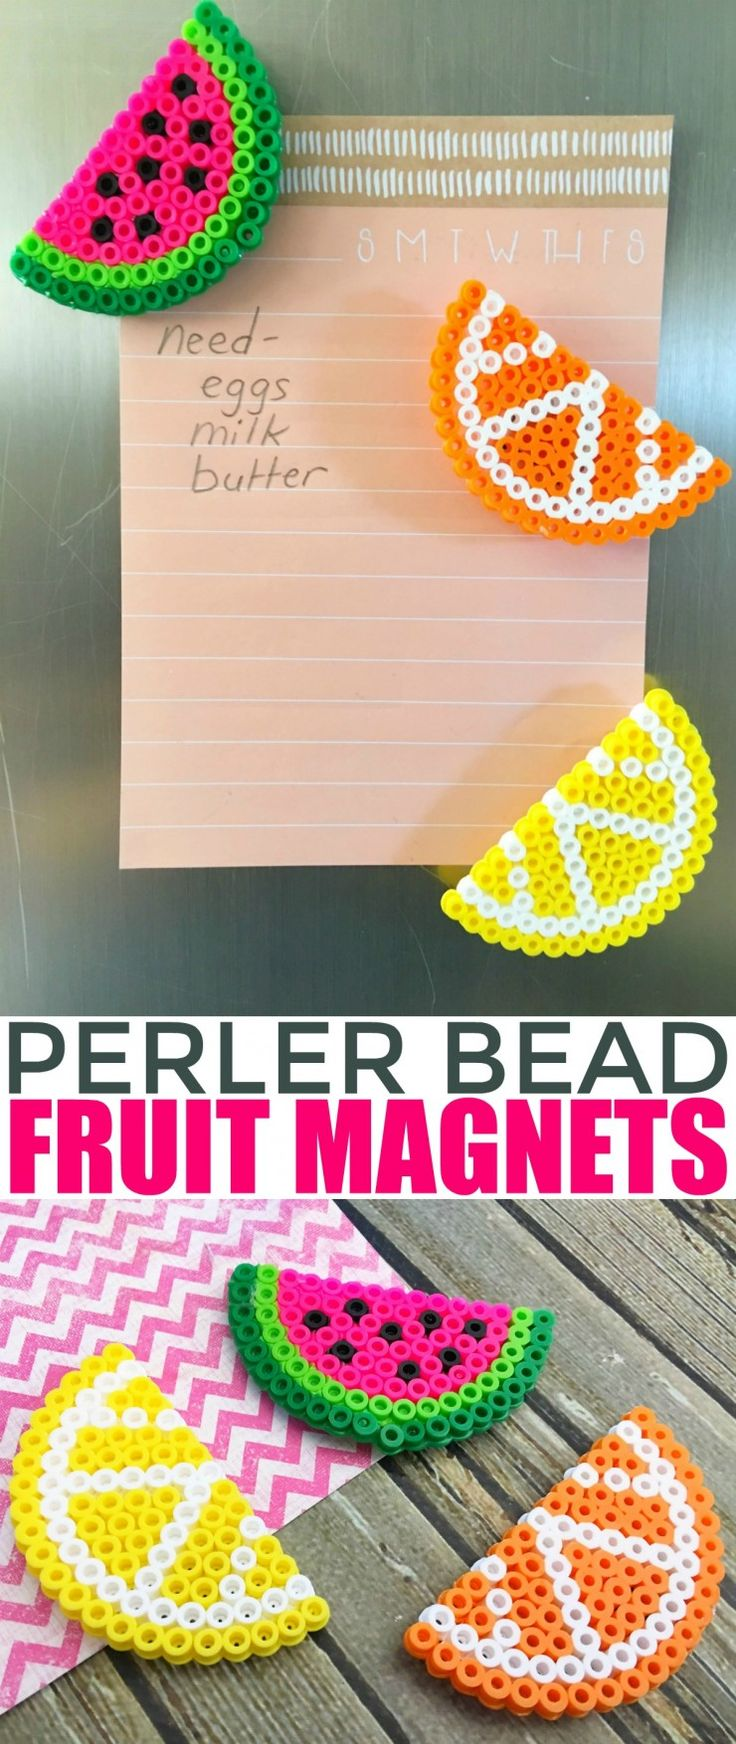 Perler beads are so much fun and are pretty versatile as far as projects you can make with them. So I'm going to tackle a pretty easy project and share with you how to make perler bead magnets.          I love these bright and fruity designs. They look so vibrant and summery. …